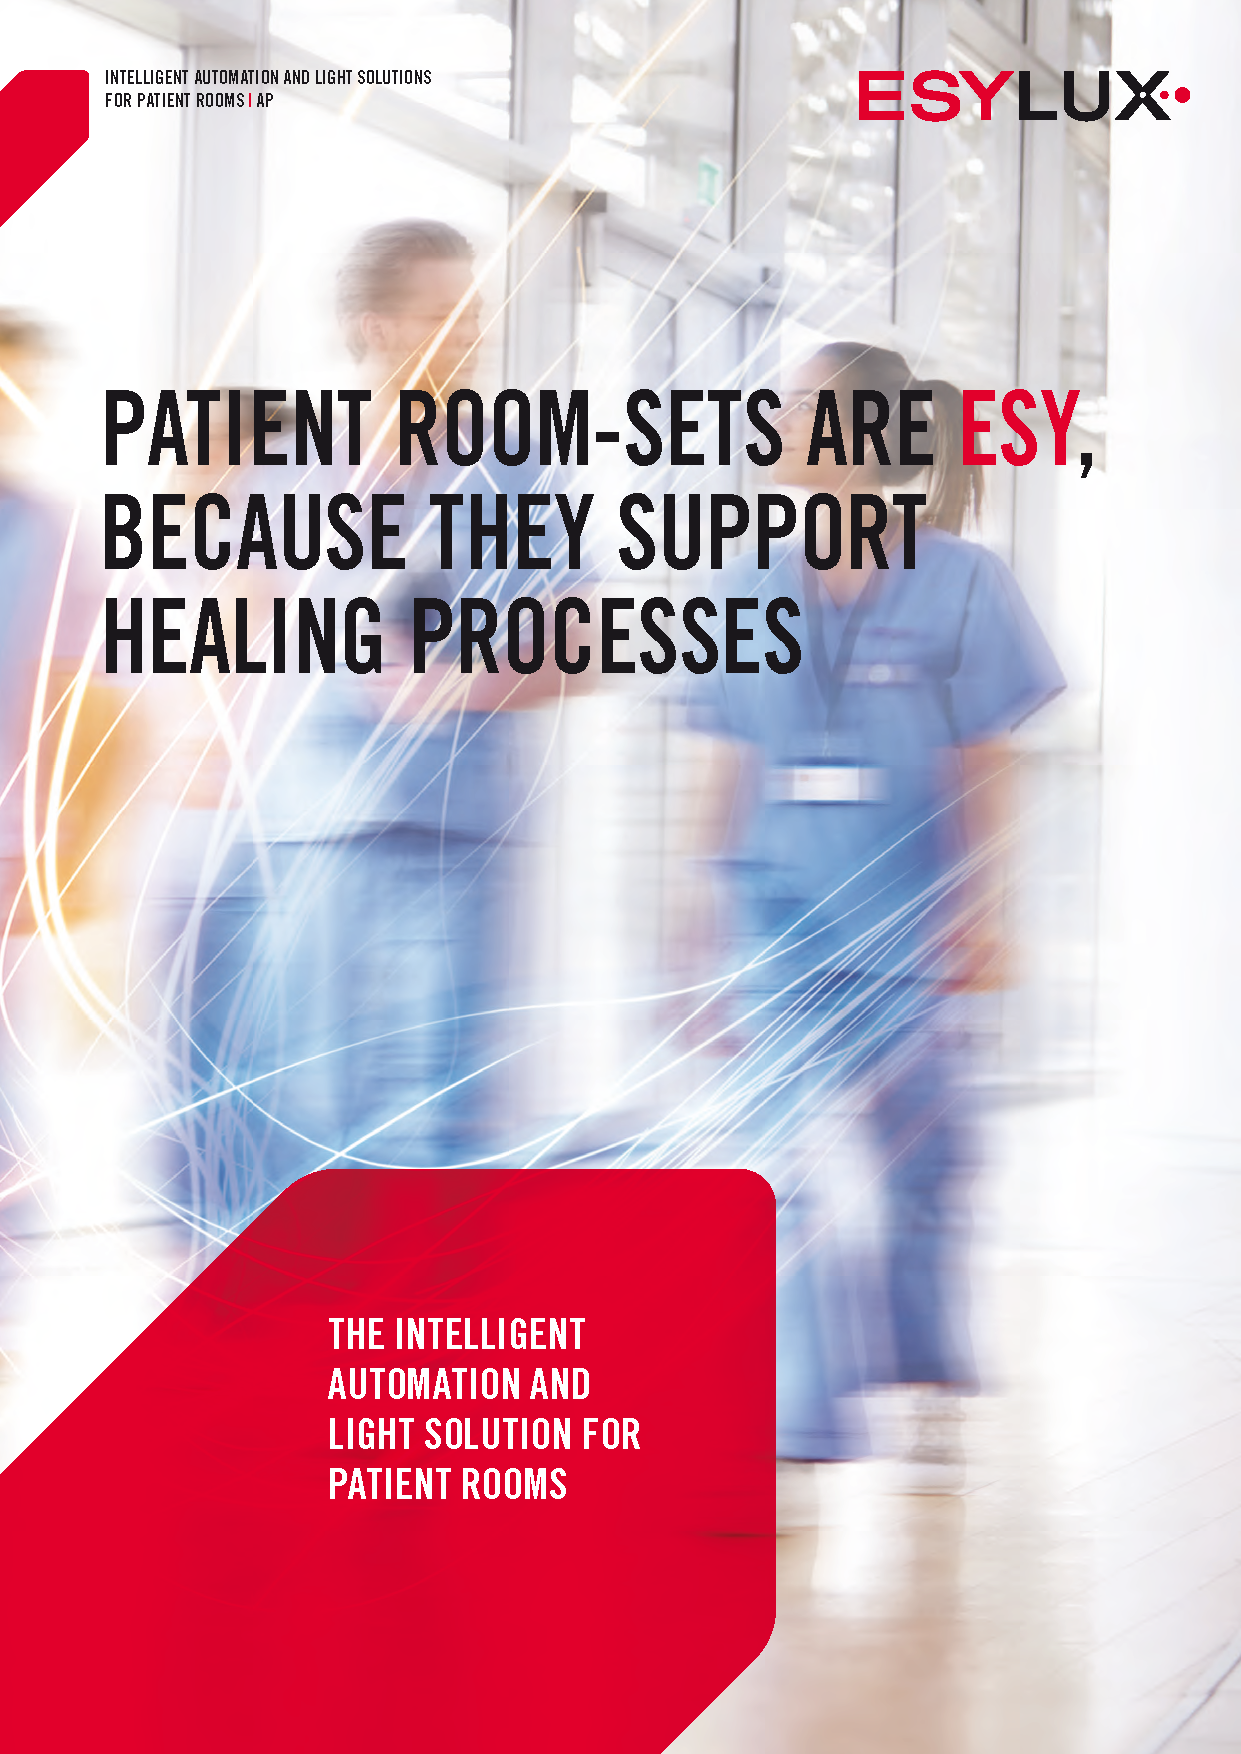 Esylux PATIENT SOLUTIONS